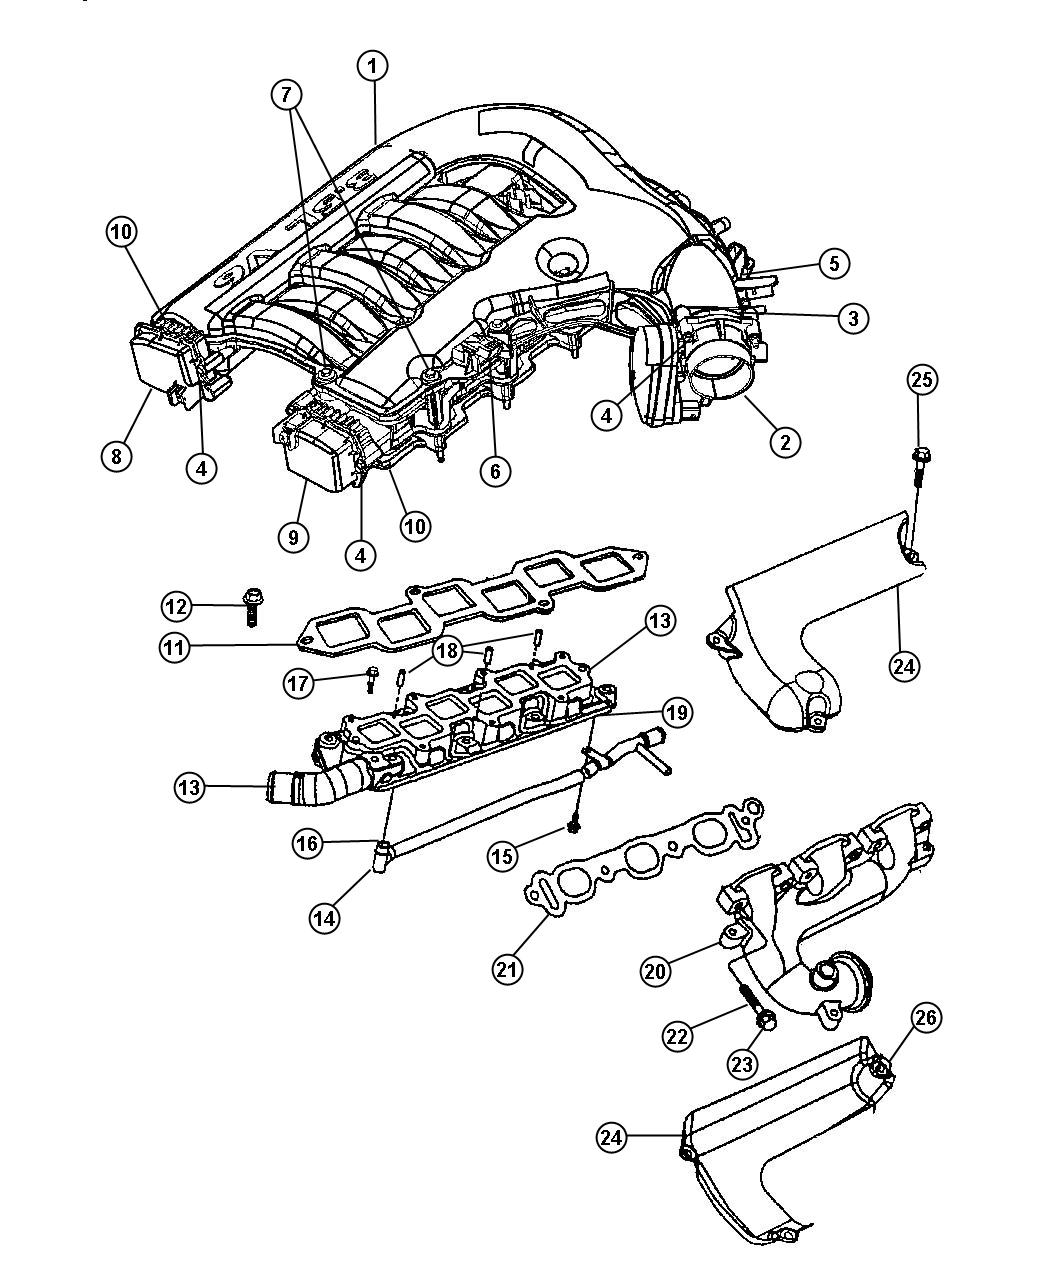 Chrysler engine diagram get free image